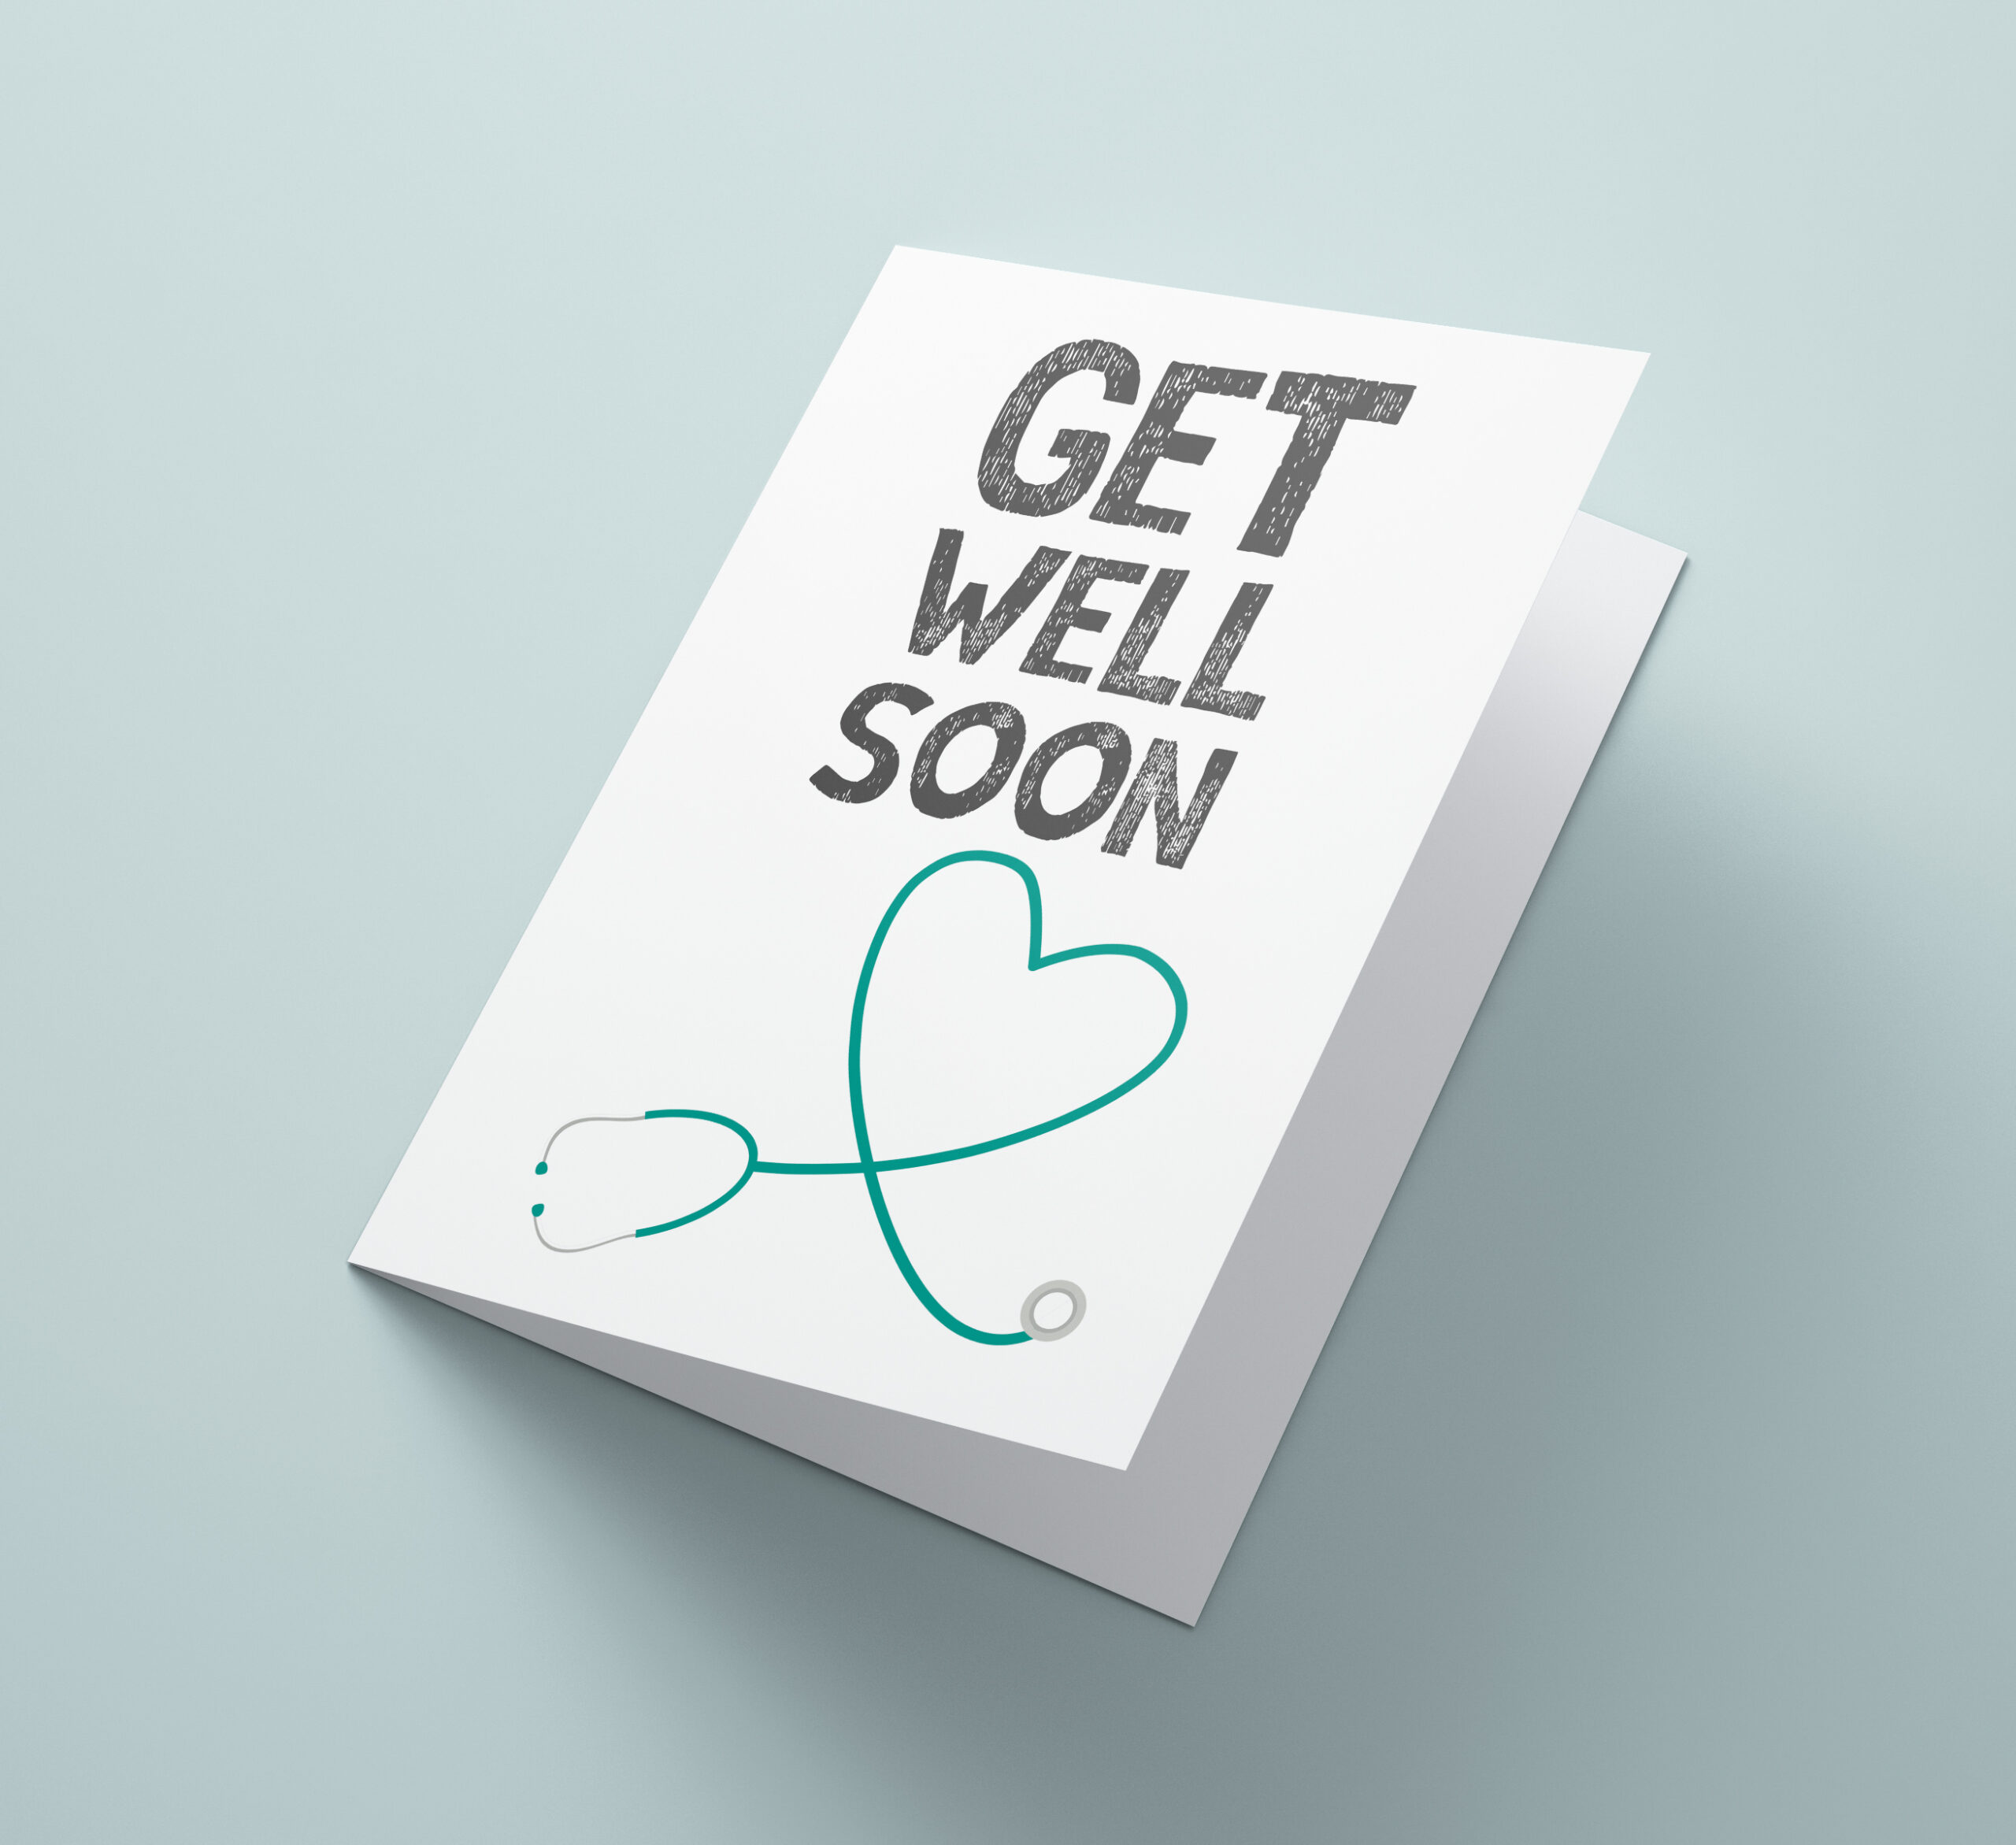 Get Well Soon Stethoscope